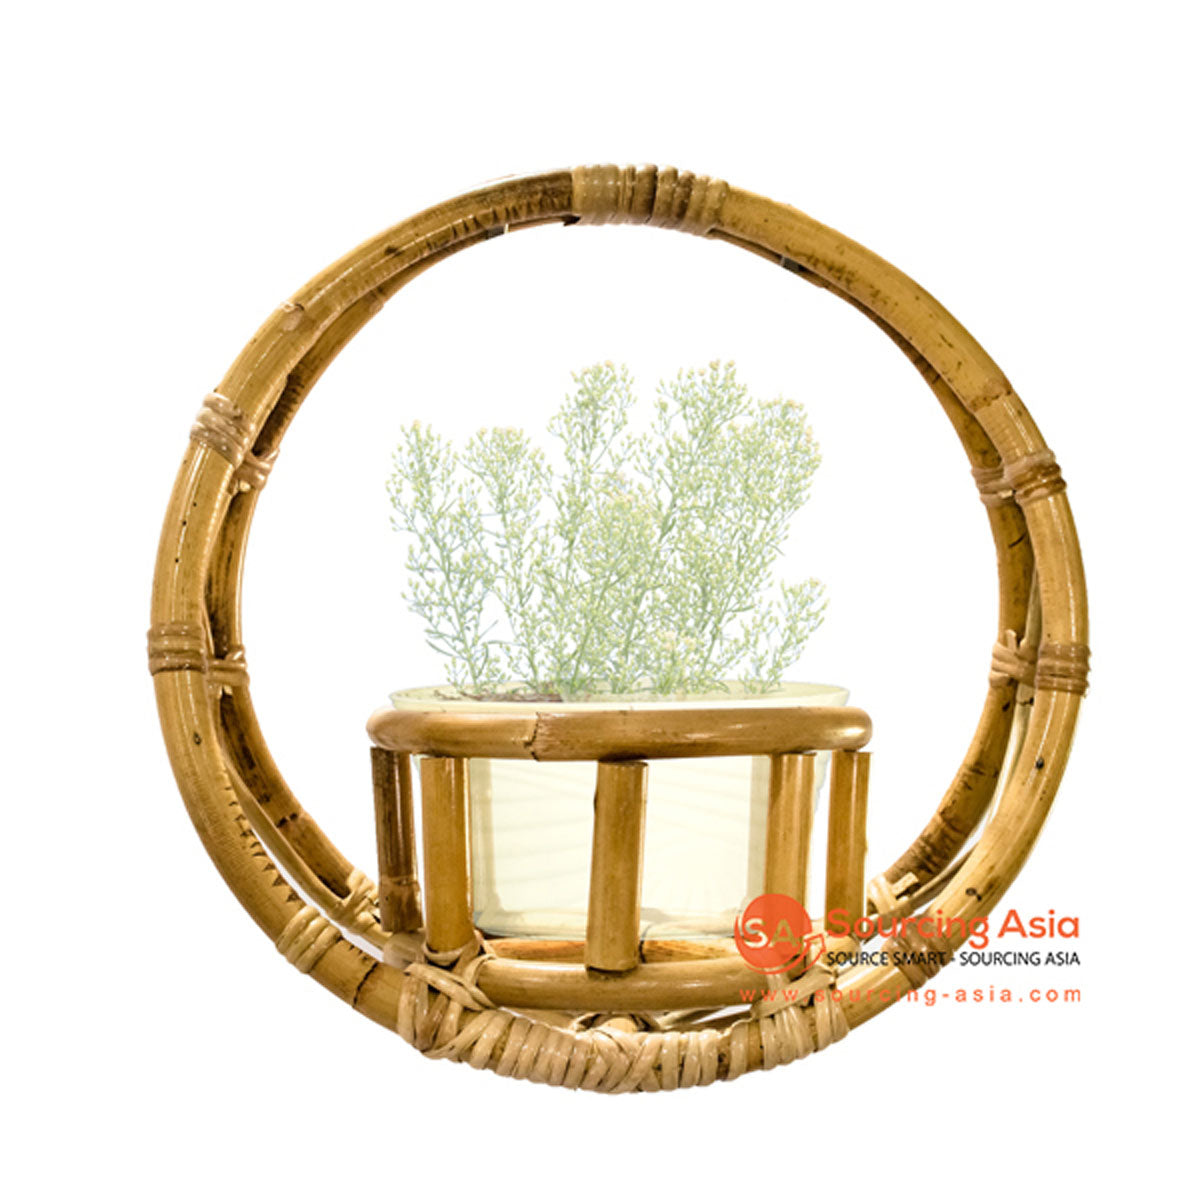 SHL094 NATURAL RATTAN ROUND PLANTER